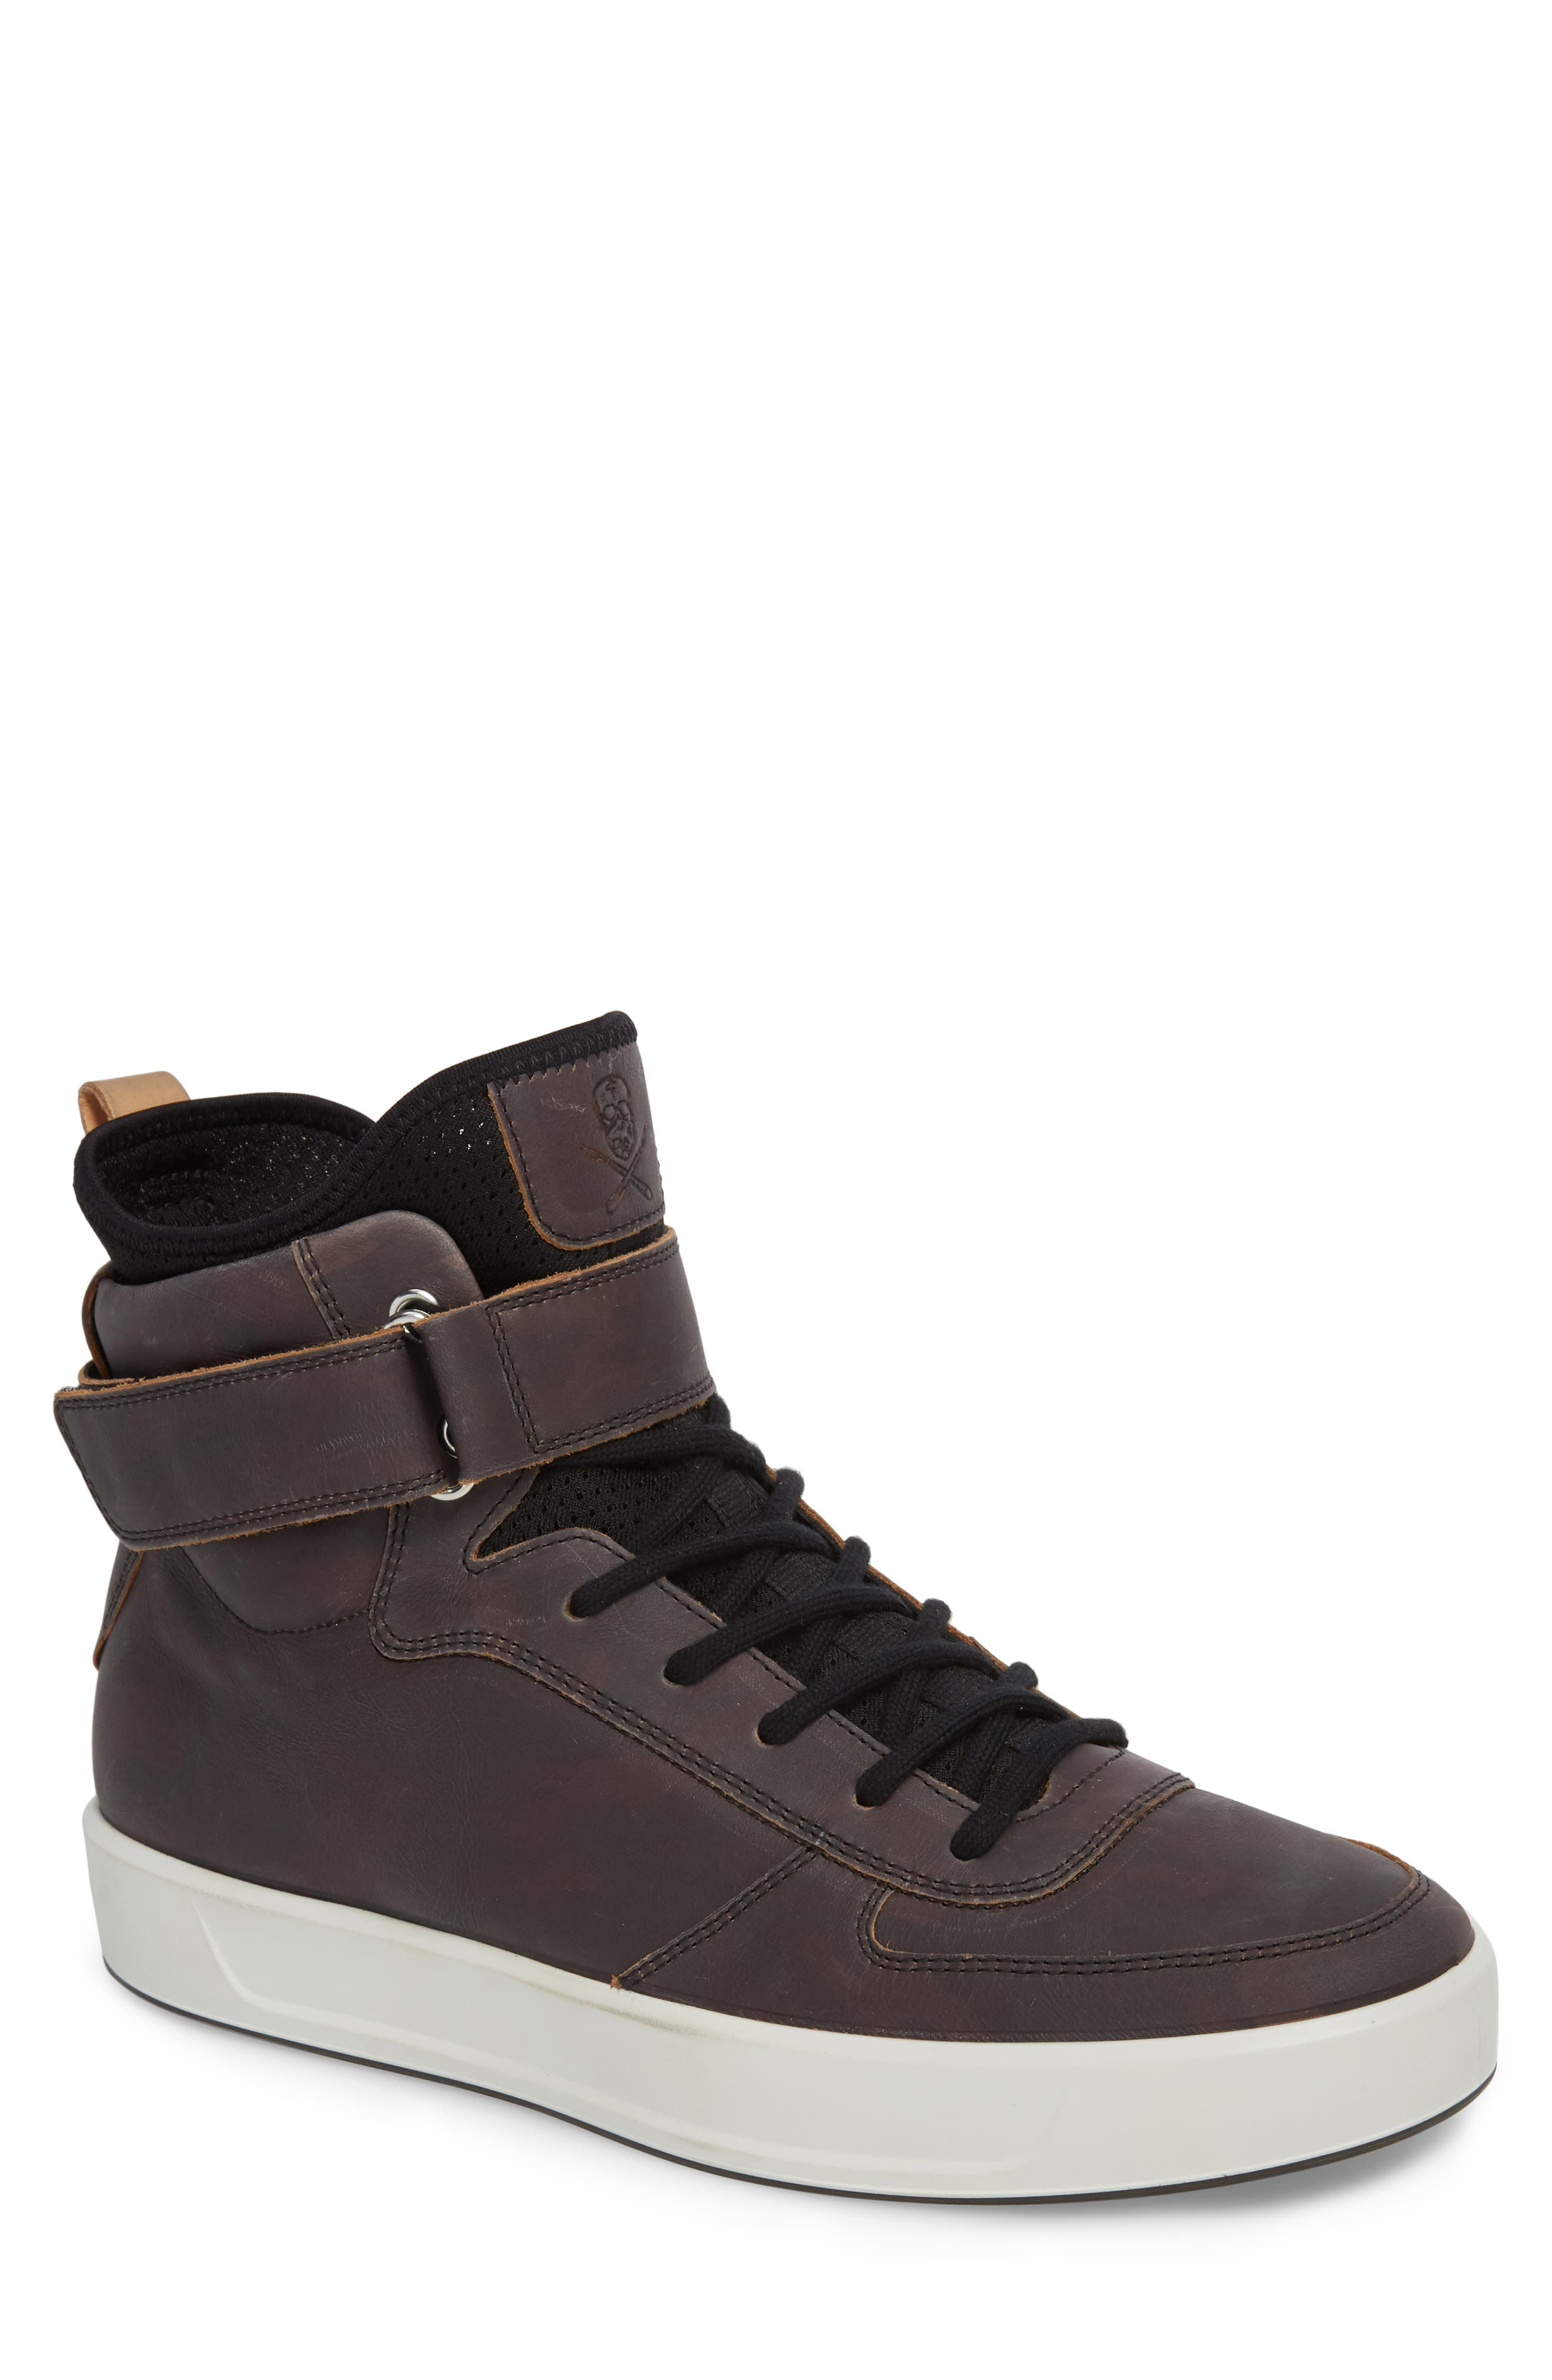 ECCO Soft 8 Color Changing Sneaker Boot, Main, color, 002